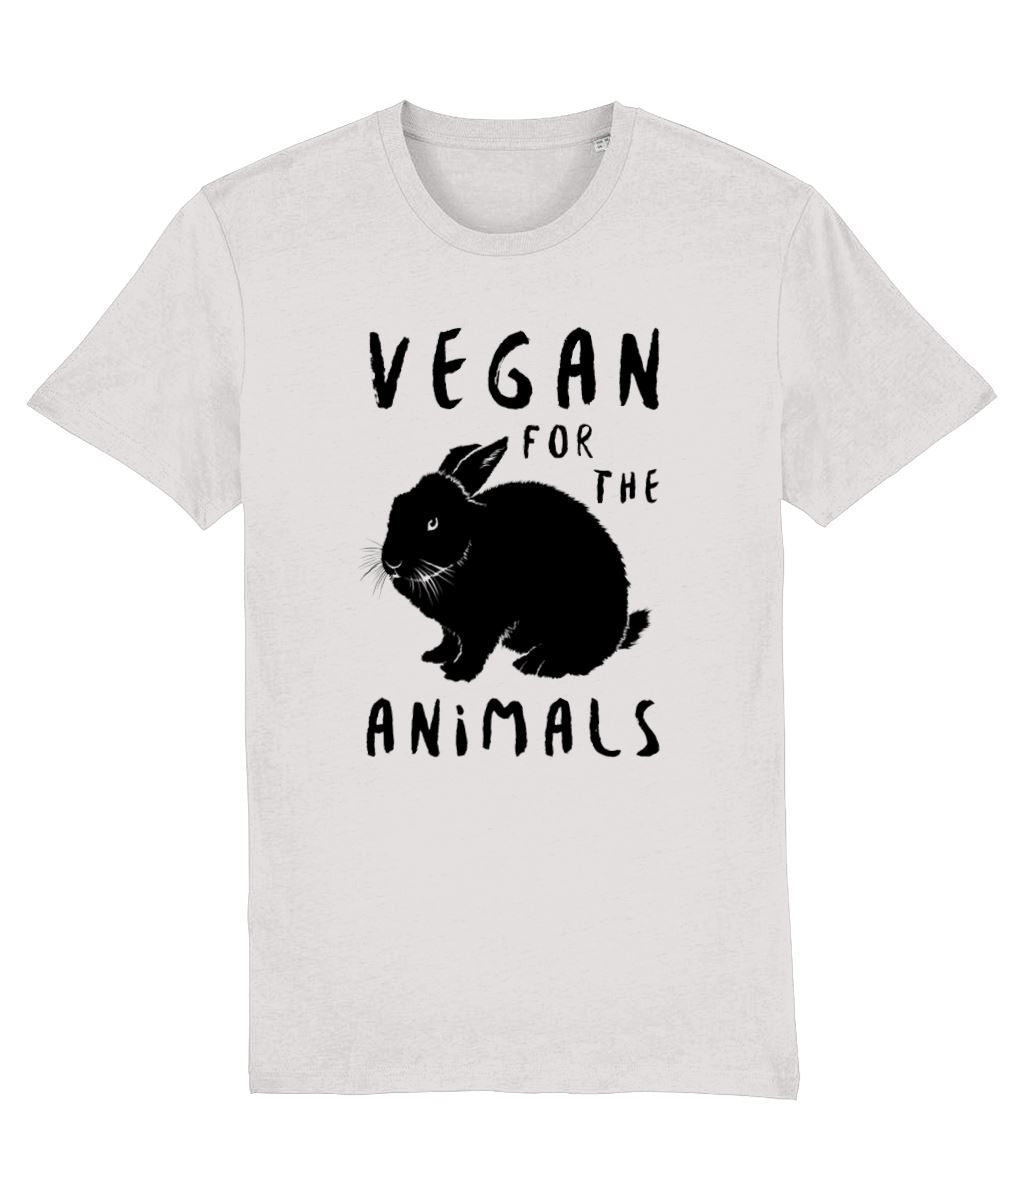 """Vegan for the Animals"" Ethical T-Shirt - 100% Organic Cotton (Unisex) Clothing Vegan Original Cream Heather Grey XX-Small"